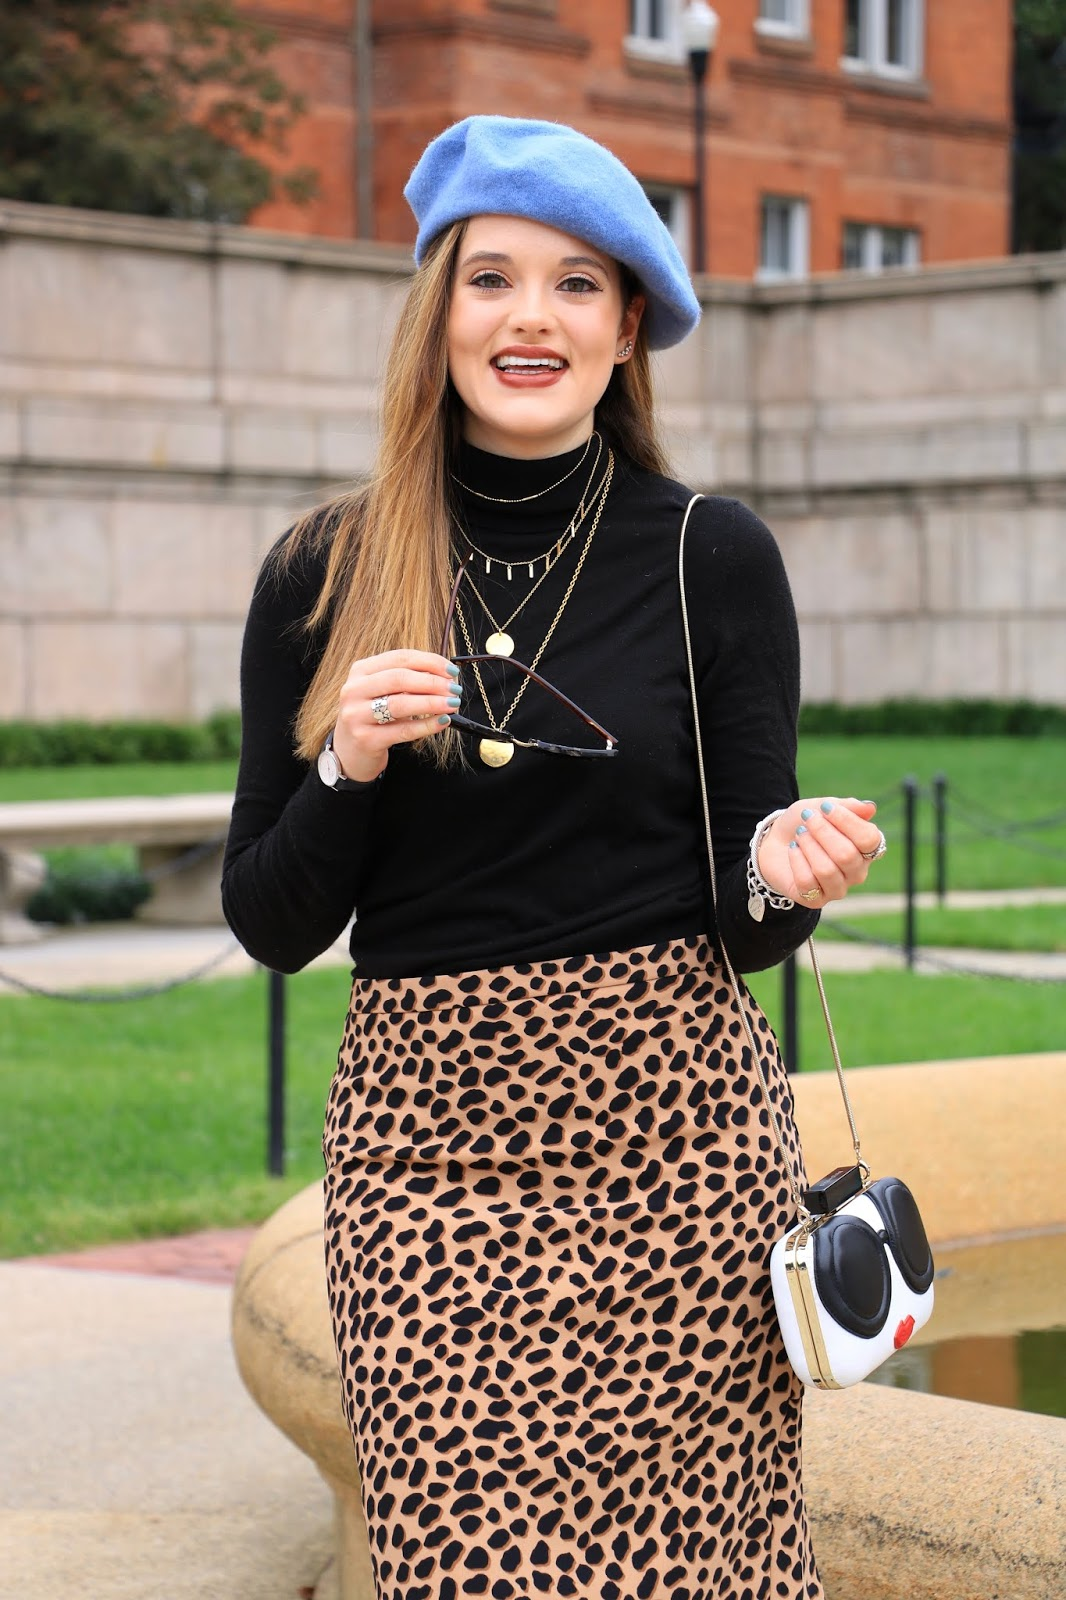 Nyc fashion blogger Kathleen Harper wearing leopard print